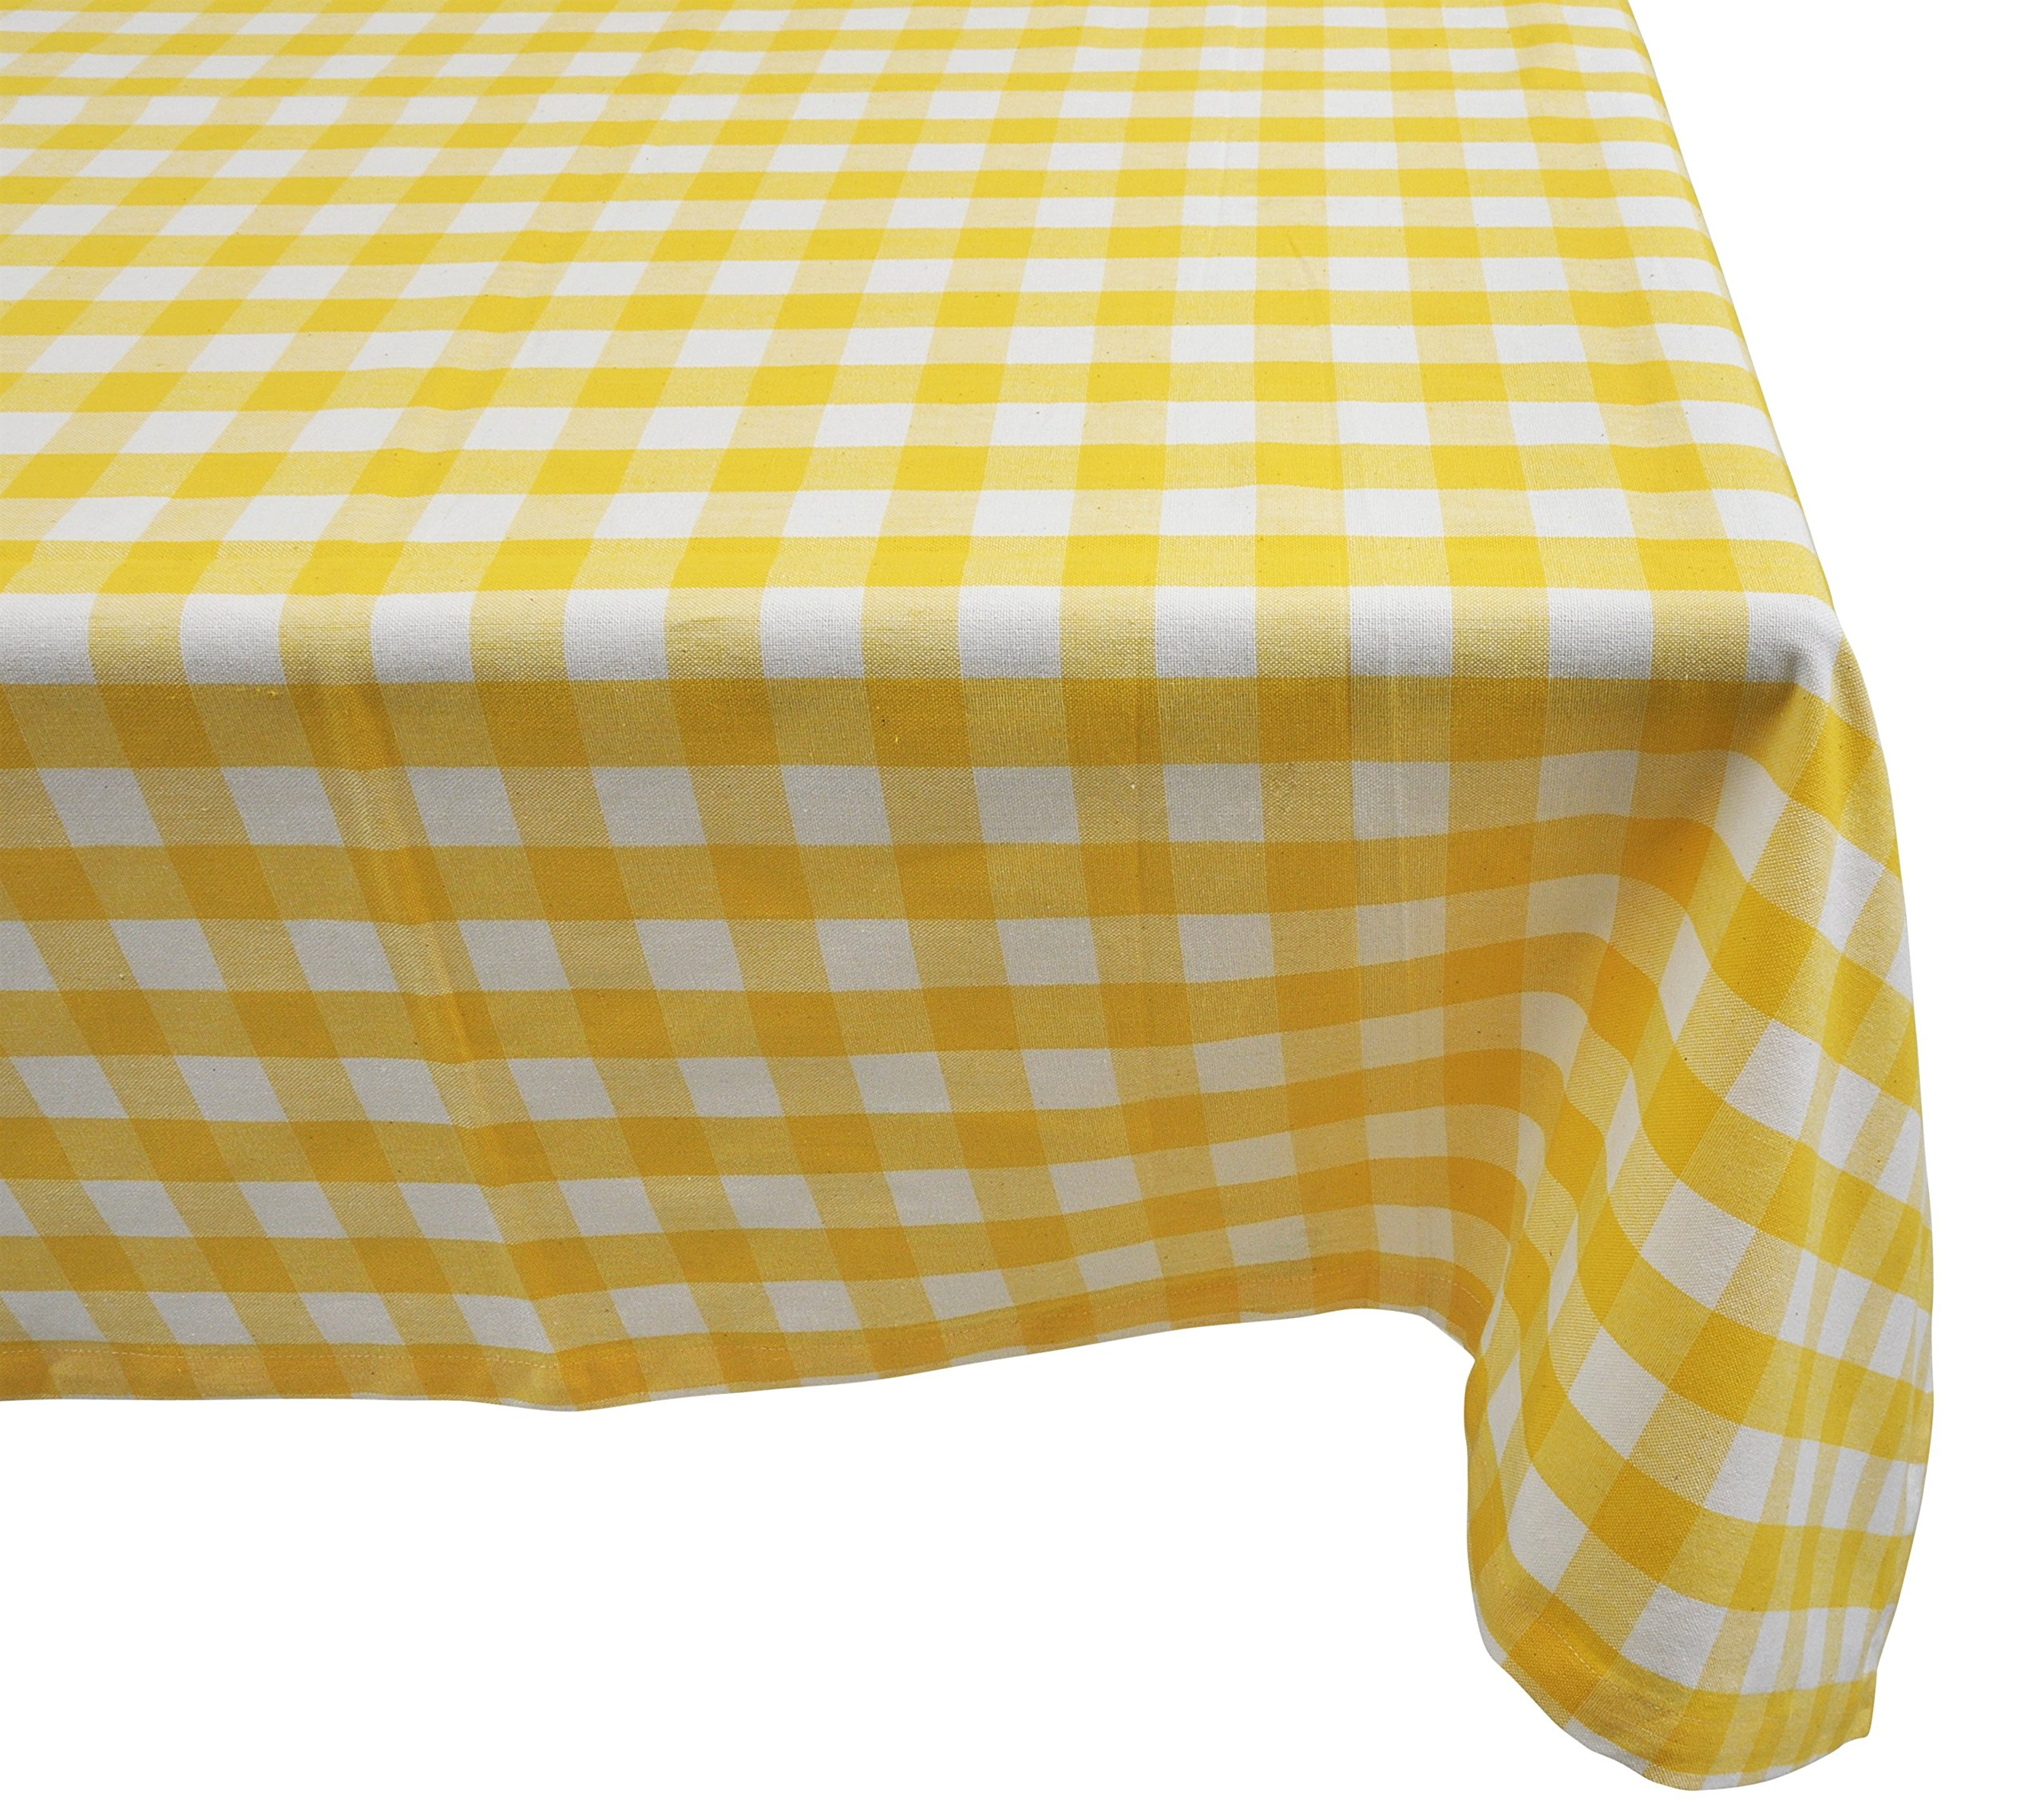 Yourtablecloth 100% Cotton Checkered Buffalo Plaid Tablecloth –for Home, Restaurants, Cafés – Be it for Everyday Dinner Picnic or Occasions like Thanksgiving 60 x 120 Rectangle/Oblong Yellow and White